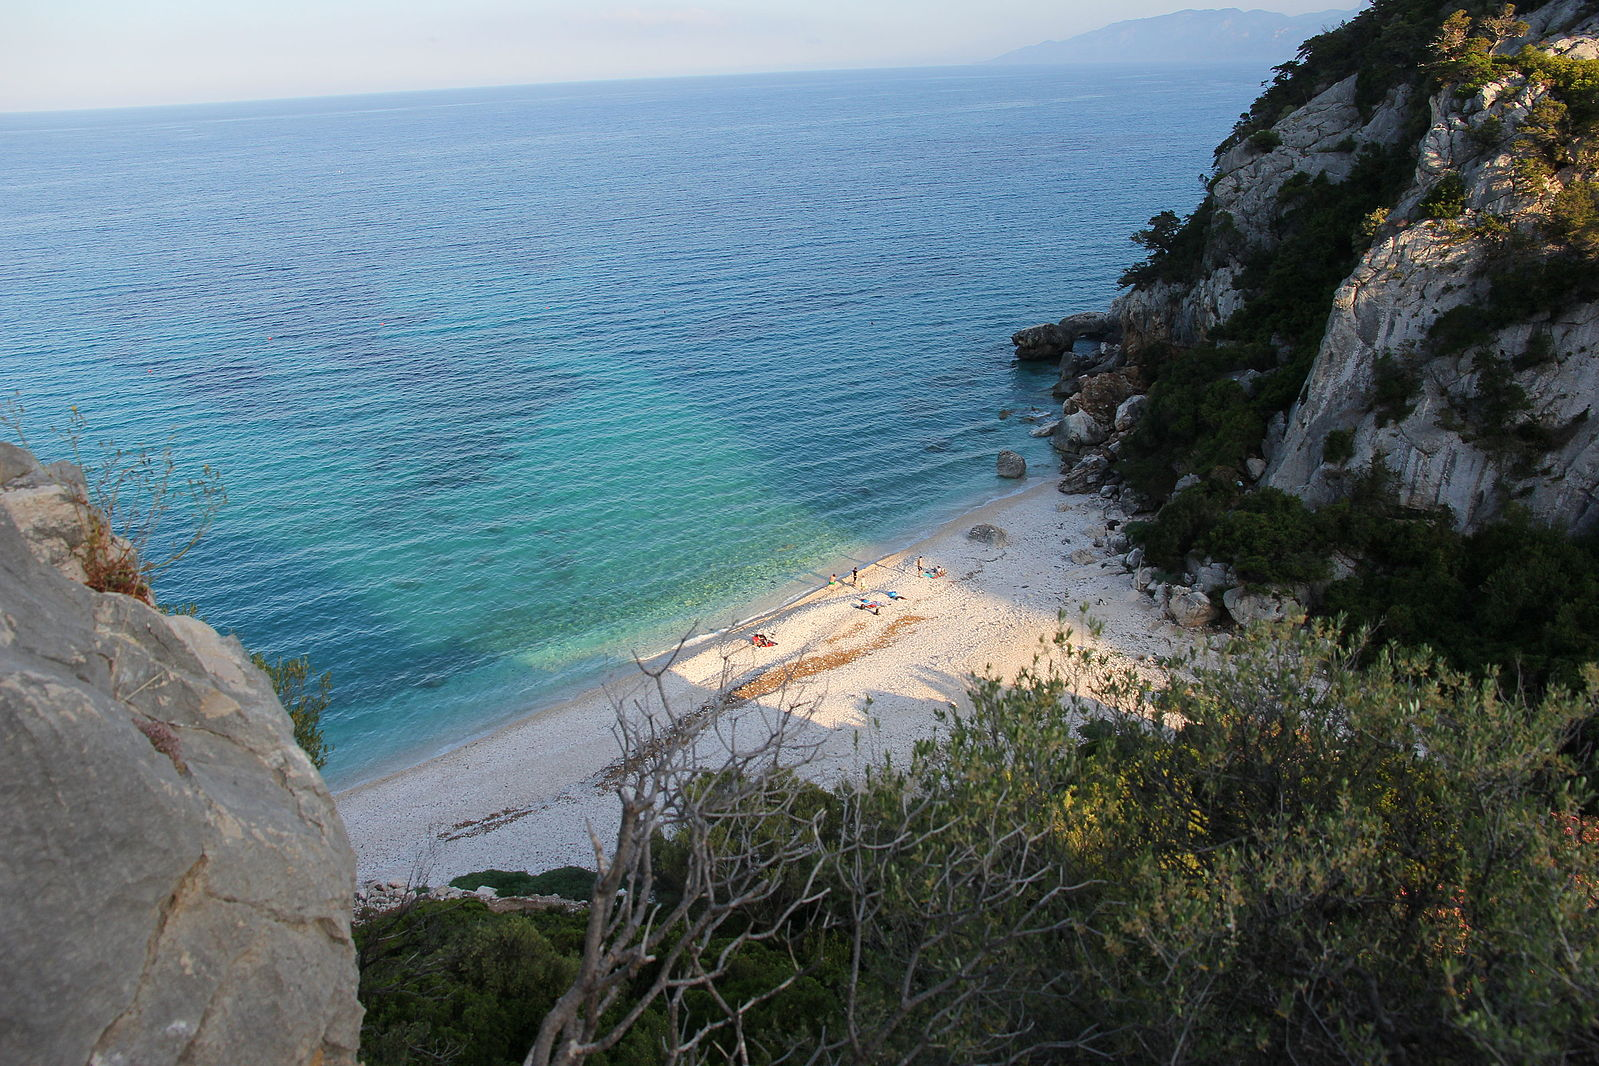 Cala Fuili, a beautiful beach near our Sardinian villas.